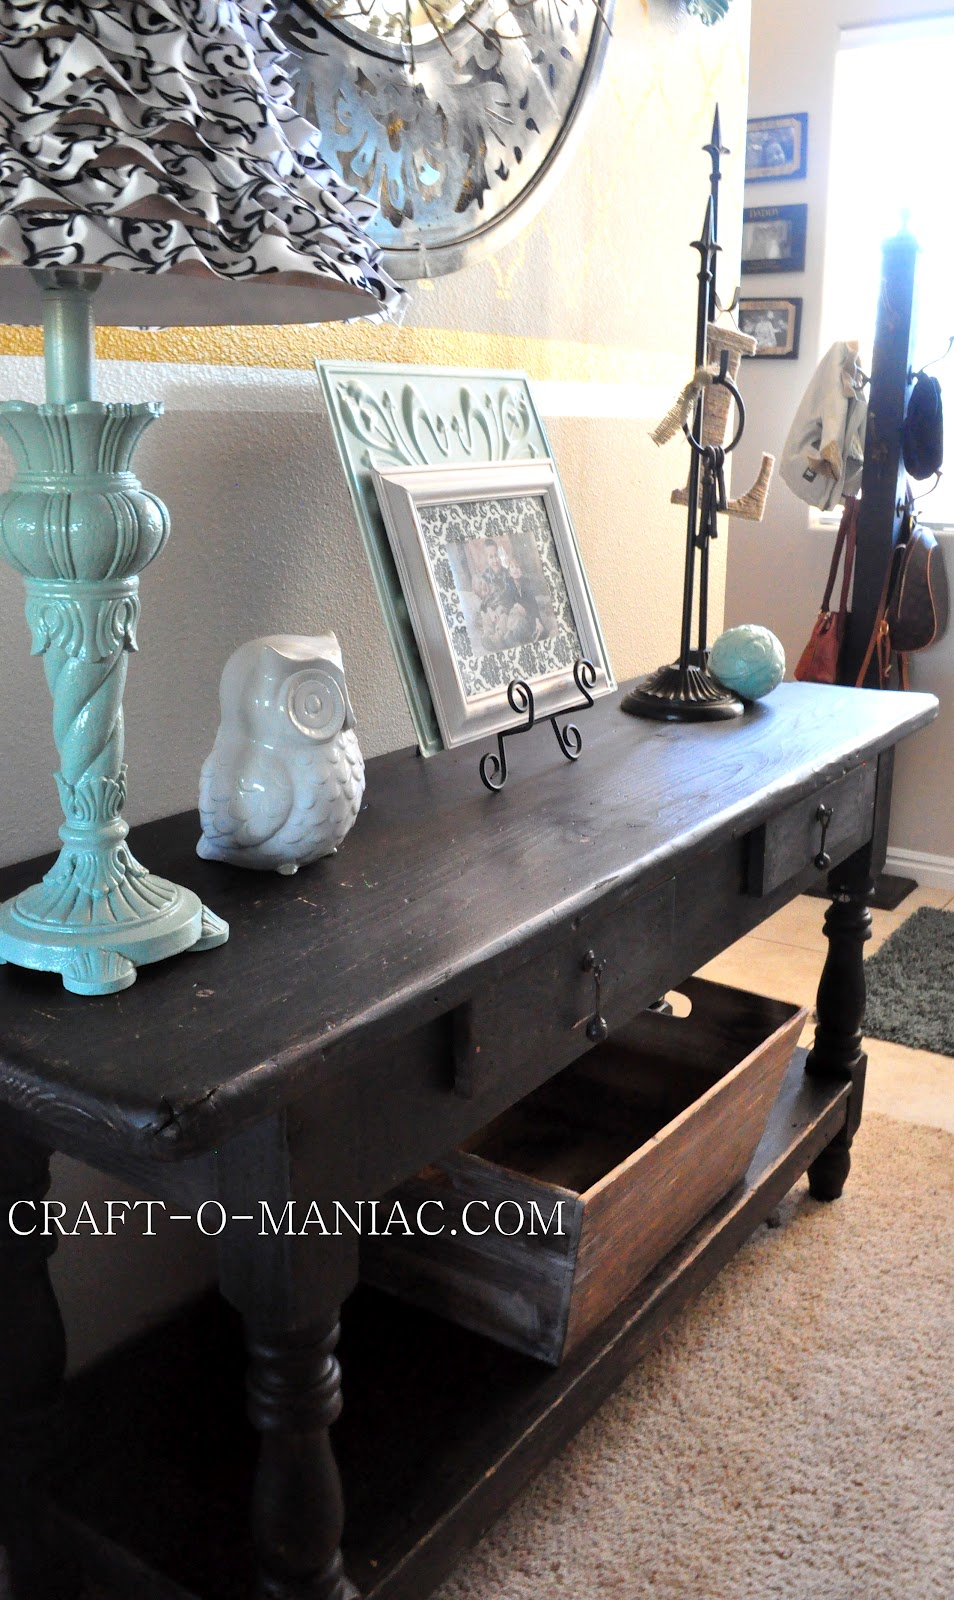 Home Decor New Entry Table From Craigslist